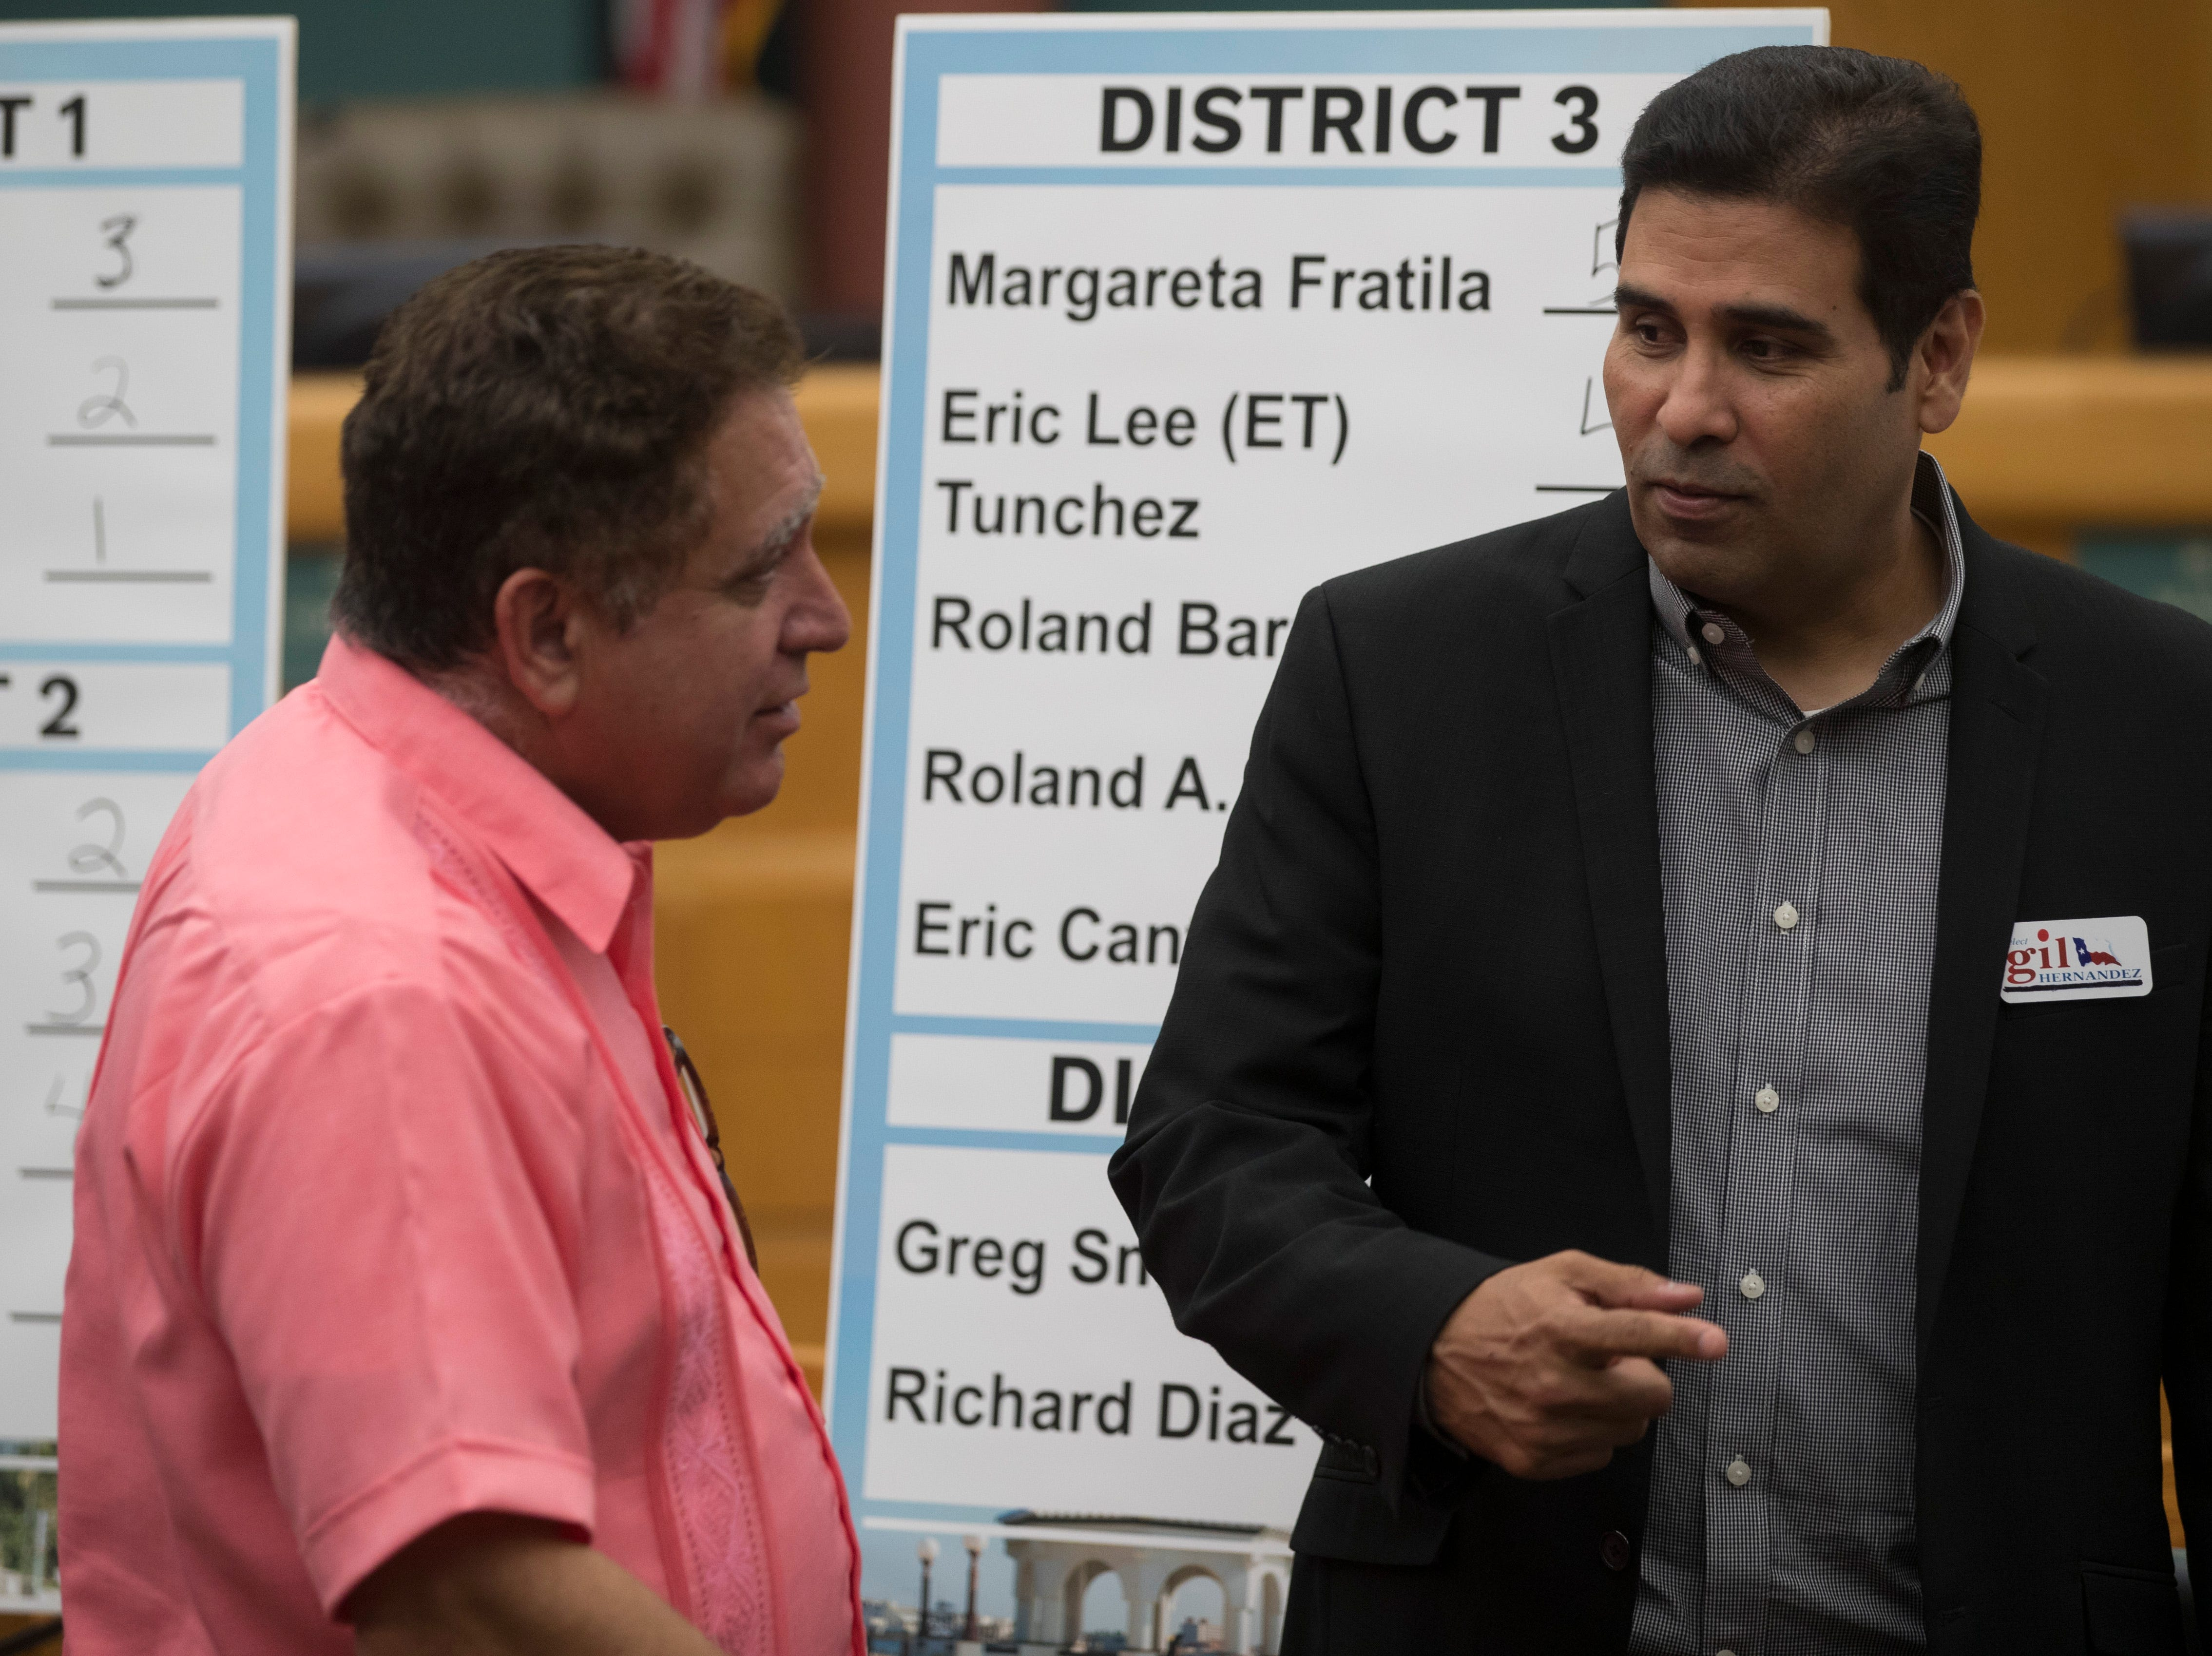 Candidates Gil Hernandez (right) and Rudy Garza talk after  drawing for their ballot order on Thursday, August 23, 2018 at City Hall.